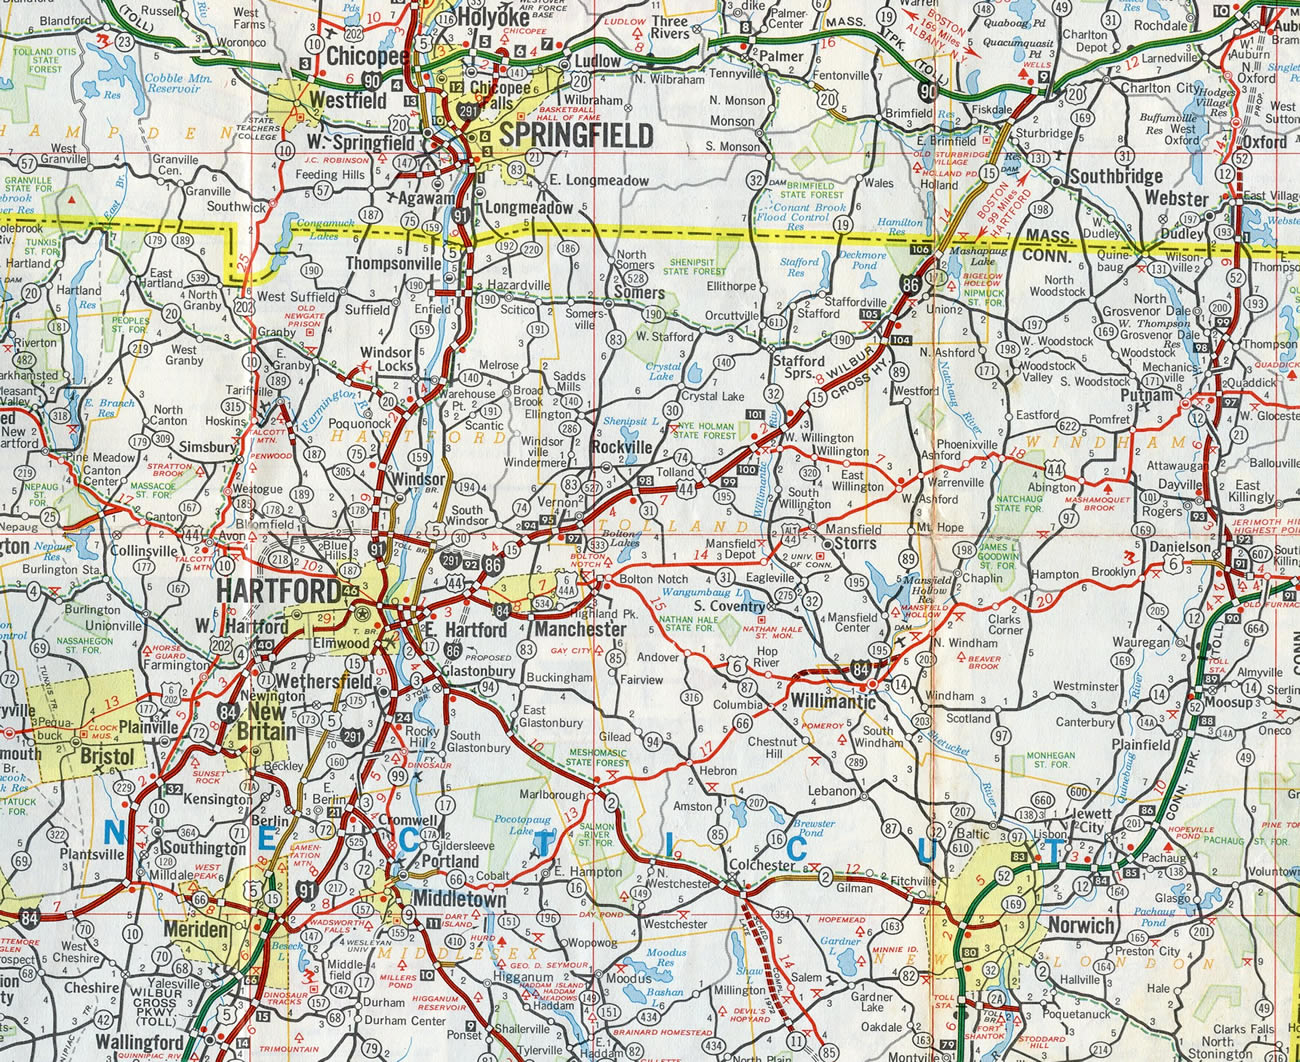 Map Of Rt 84 In New York.Interstate 84 Eastern Interstate Guide Com